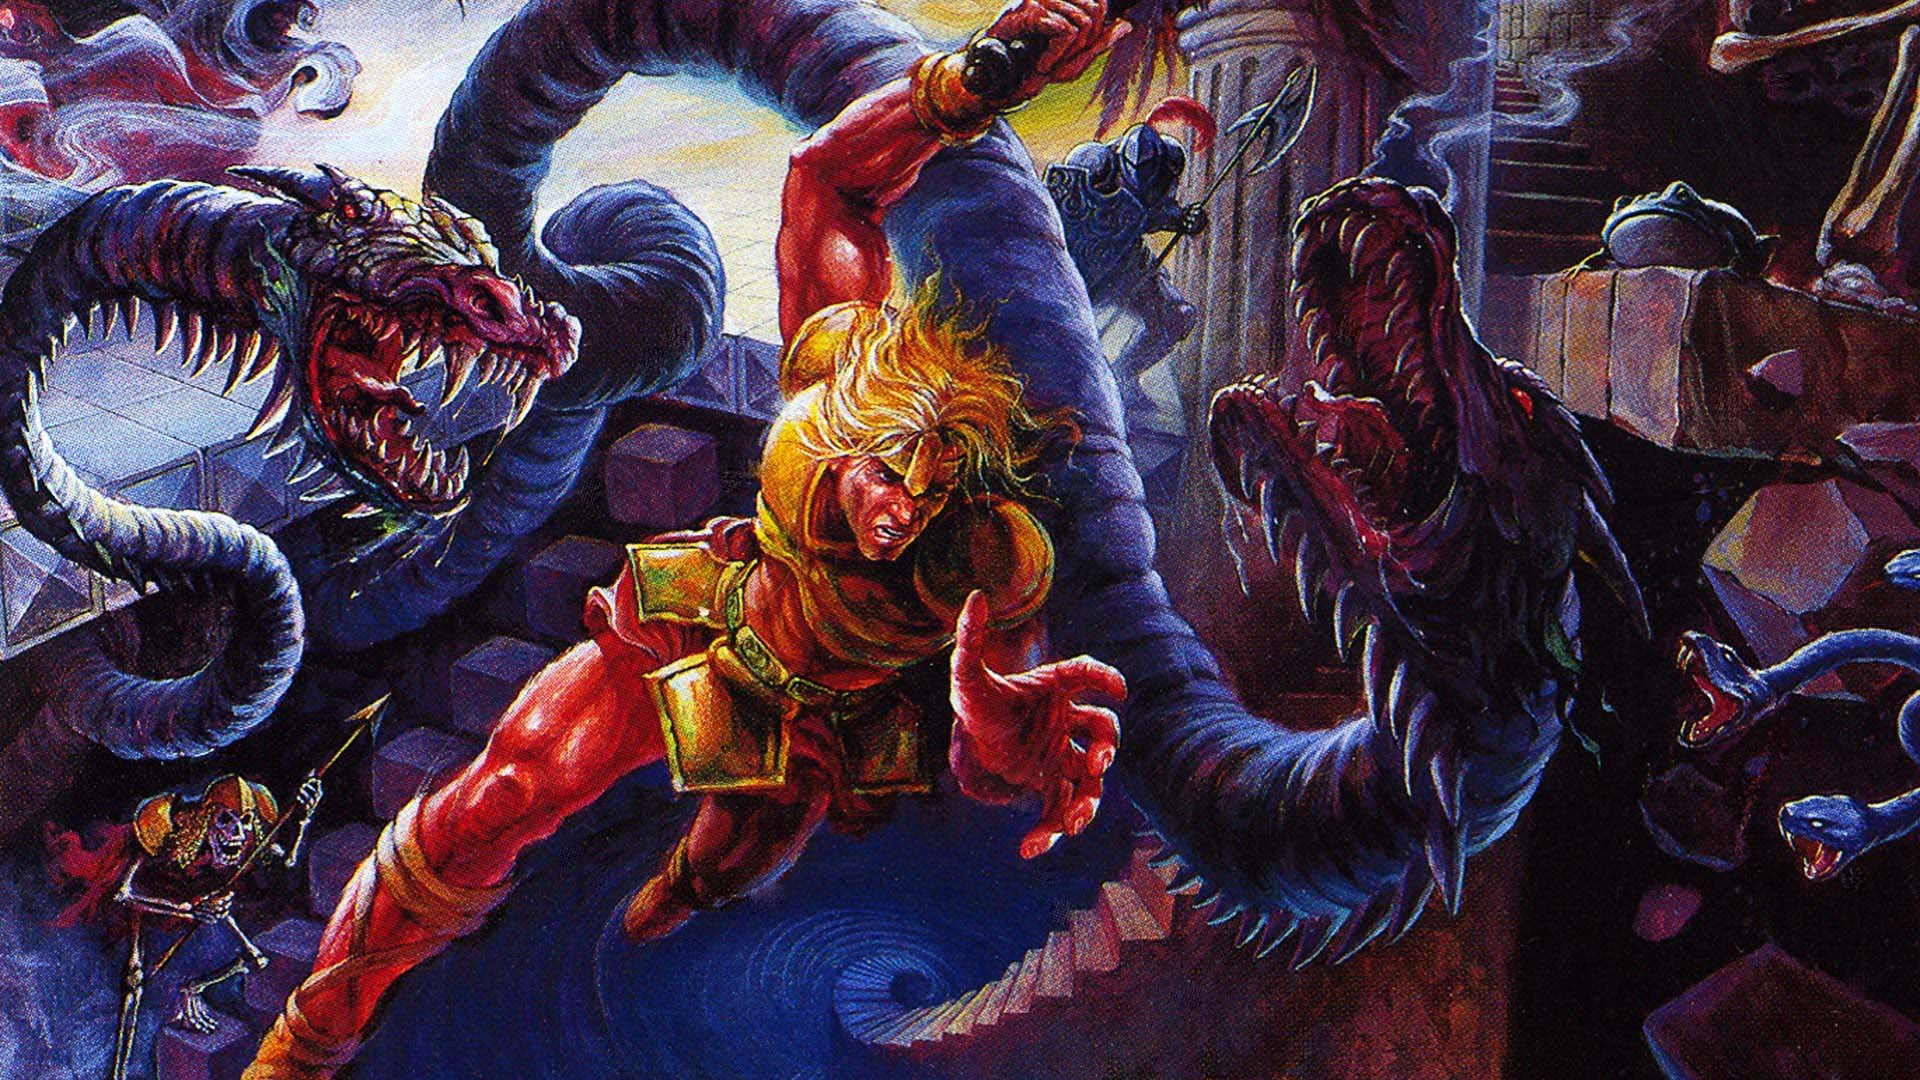 Blood Money Wallpaper Hd Super Castlevania Iv Whips Onto New 3ds Virtual Consoles